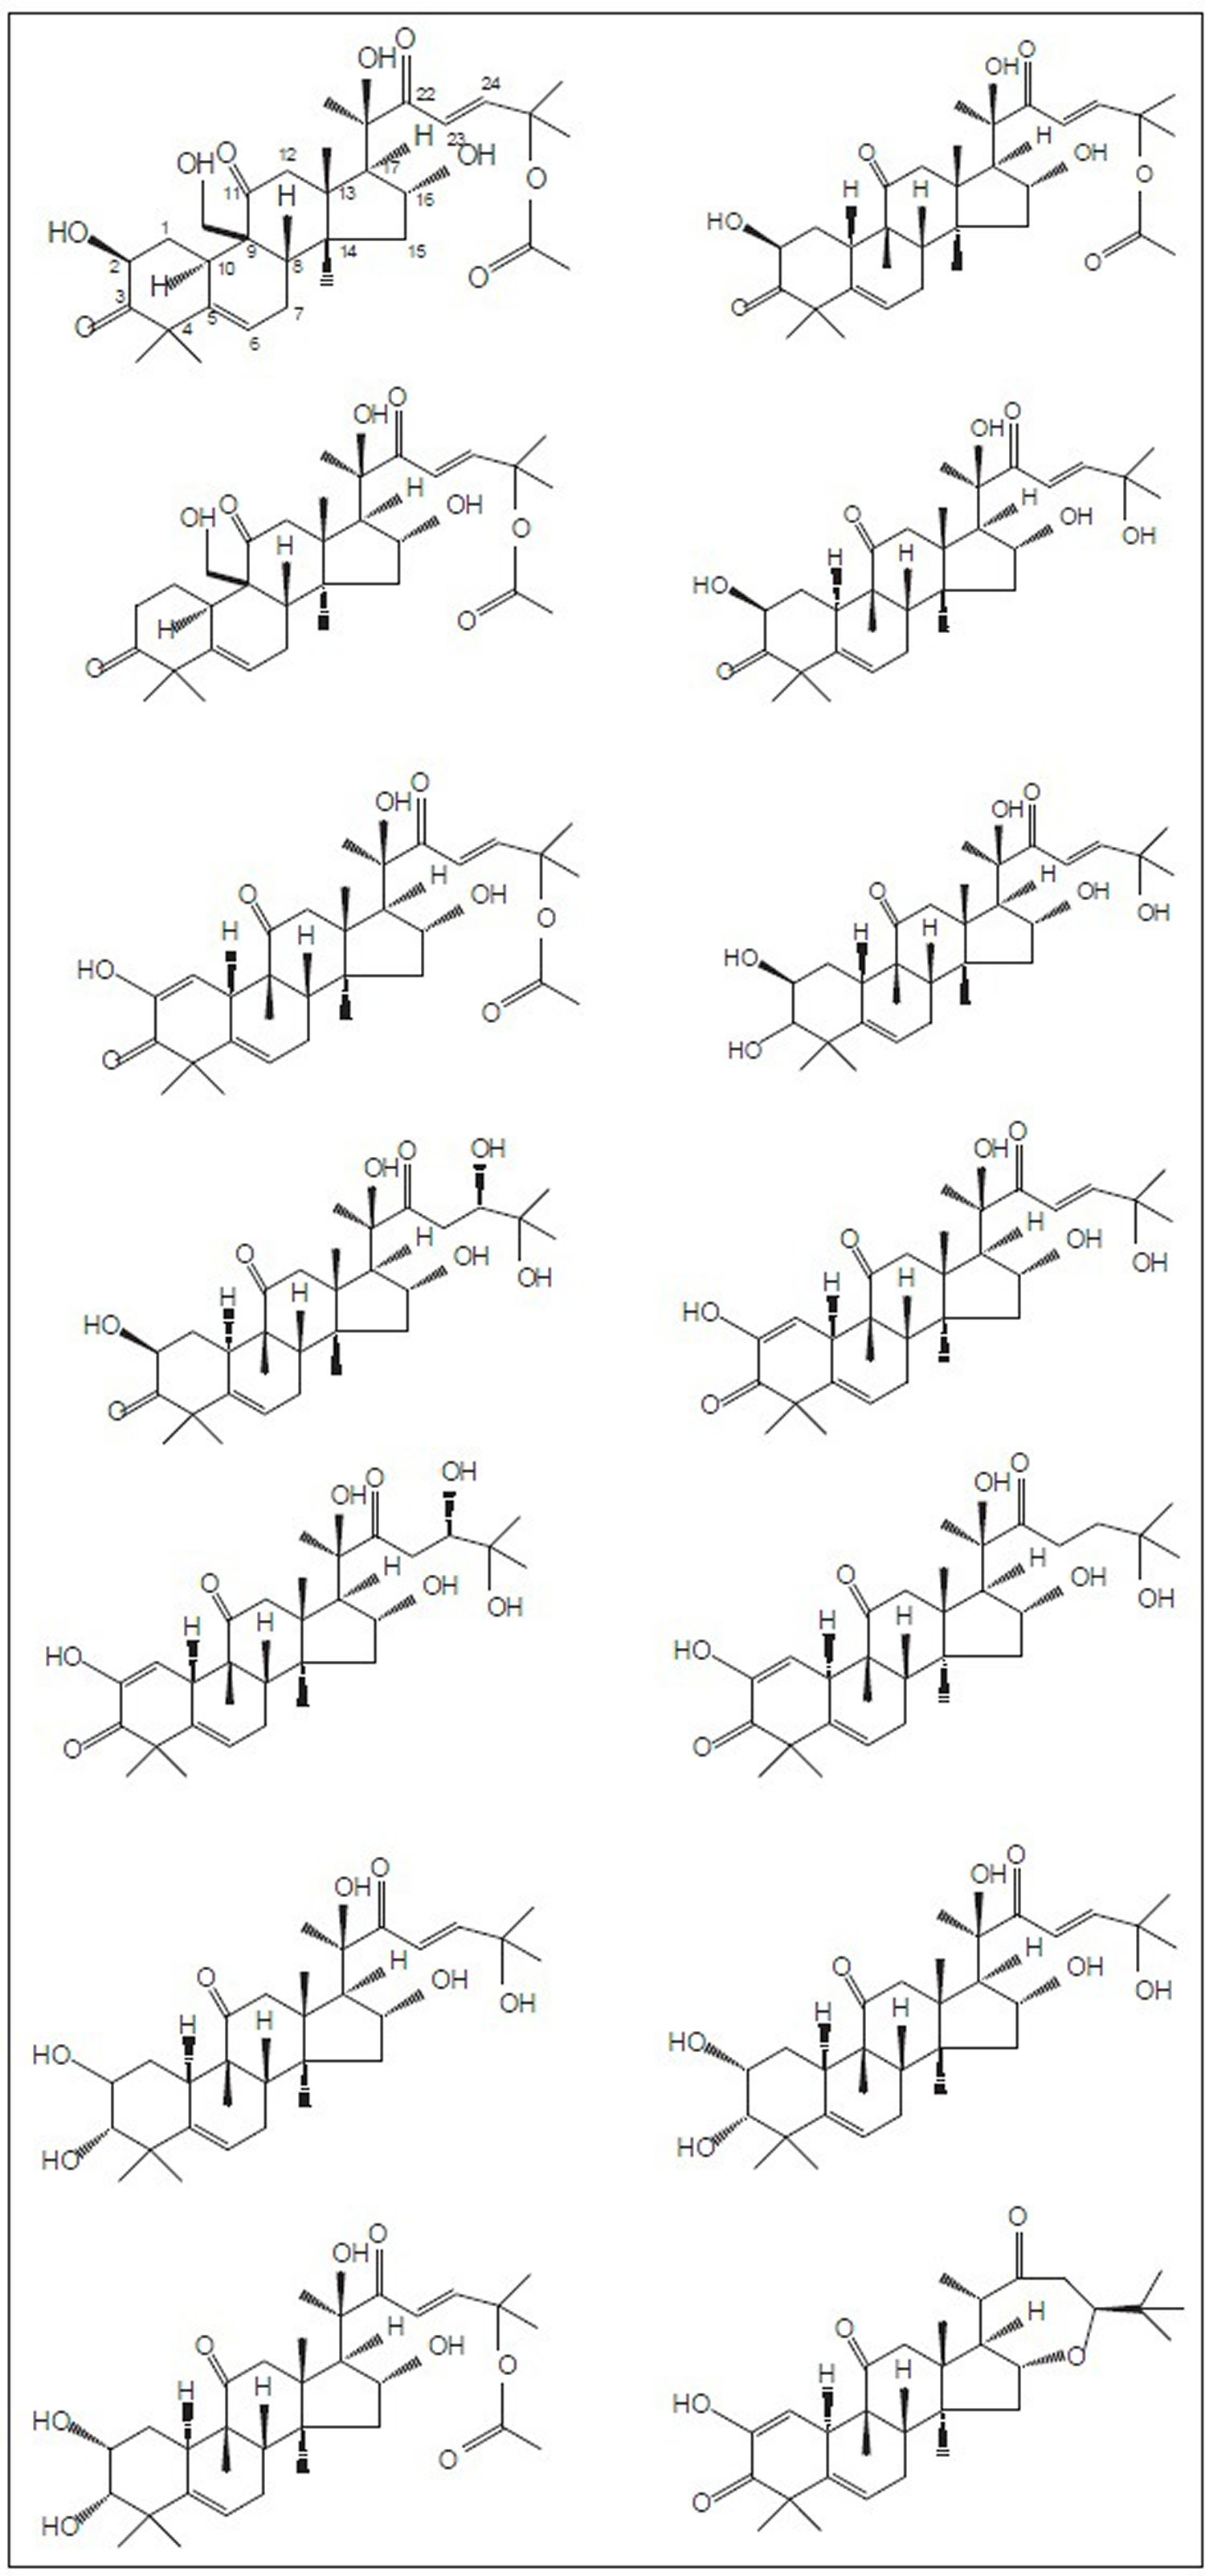 Cucurbitacin analogs chemical structures